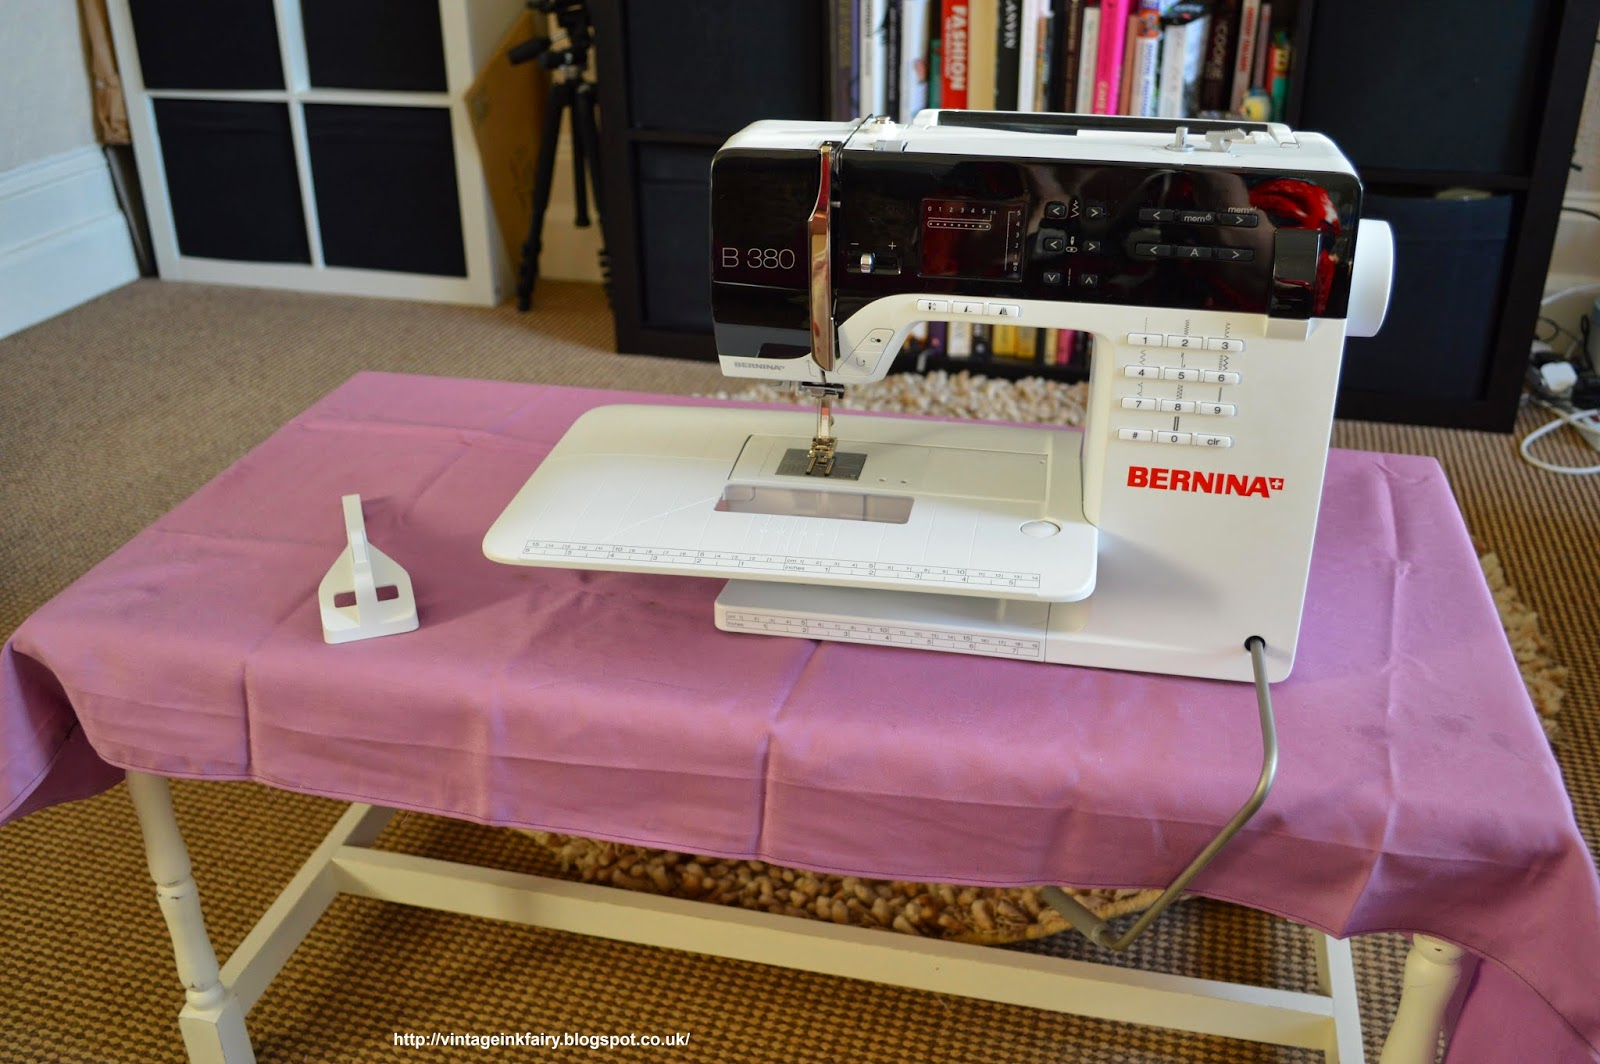 My Oh Sew Vintage Life: UnBoxing a Bernina 380 - What do you